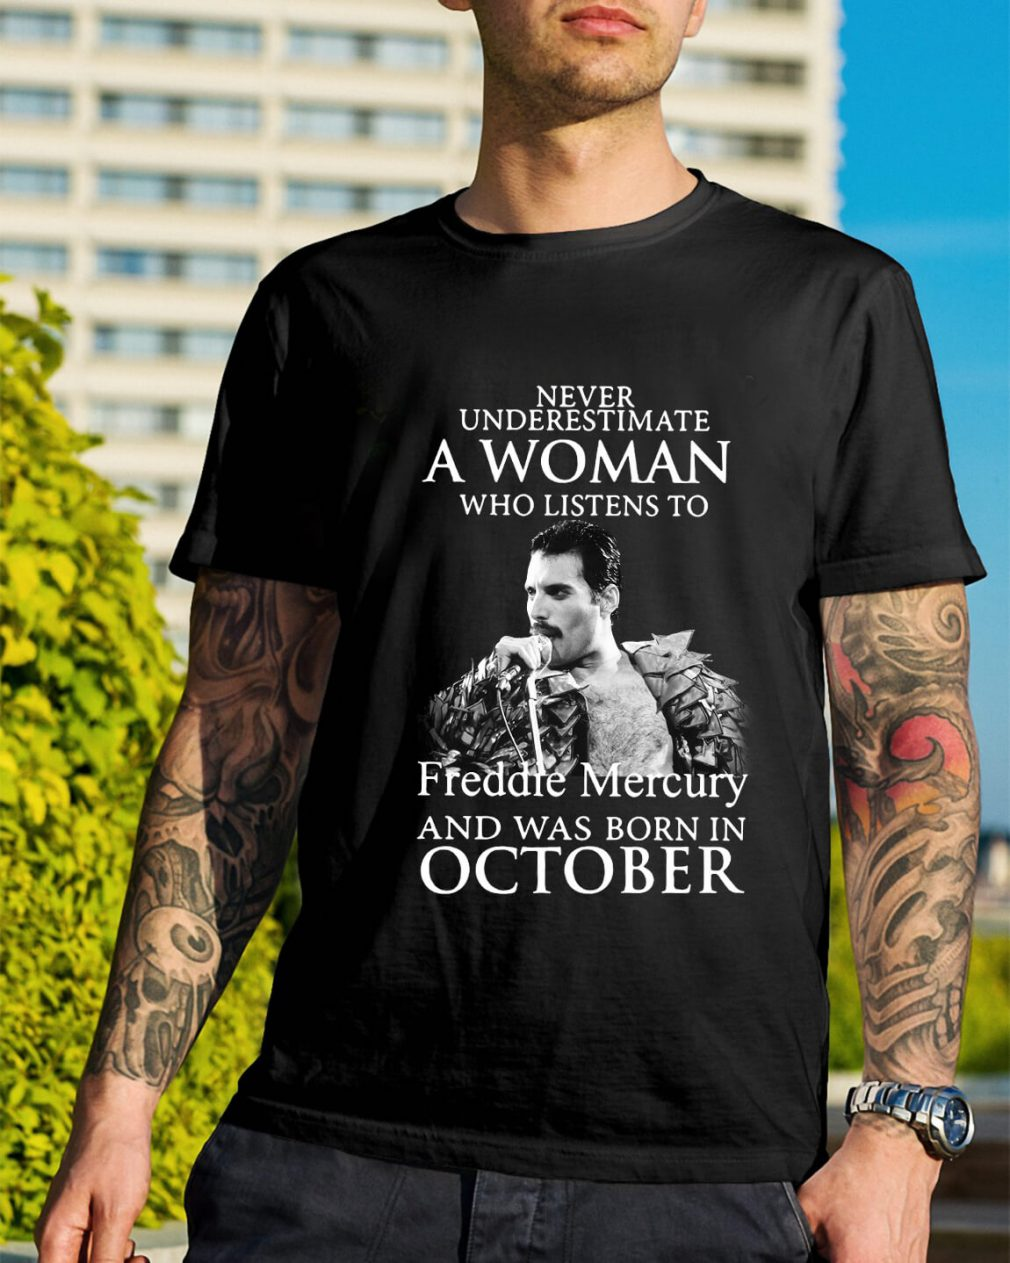 A woman who listens to Freddie Mercury and was born in October shirt